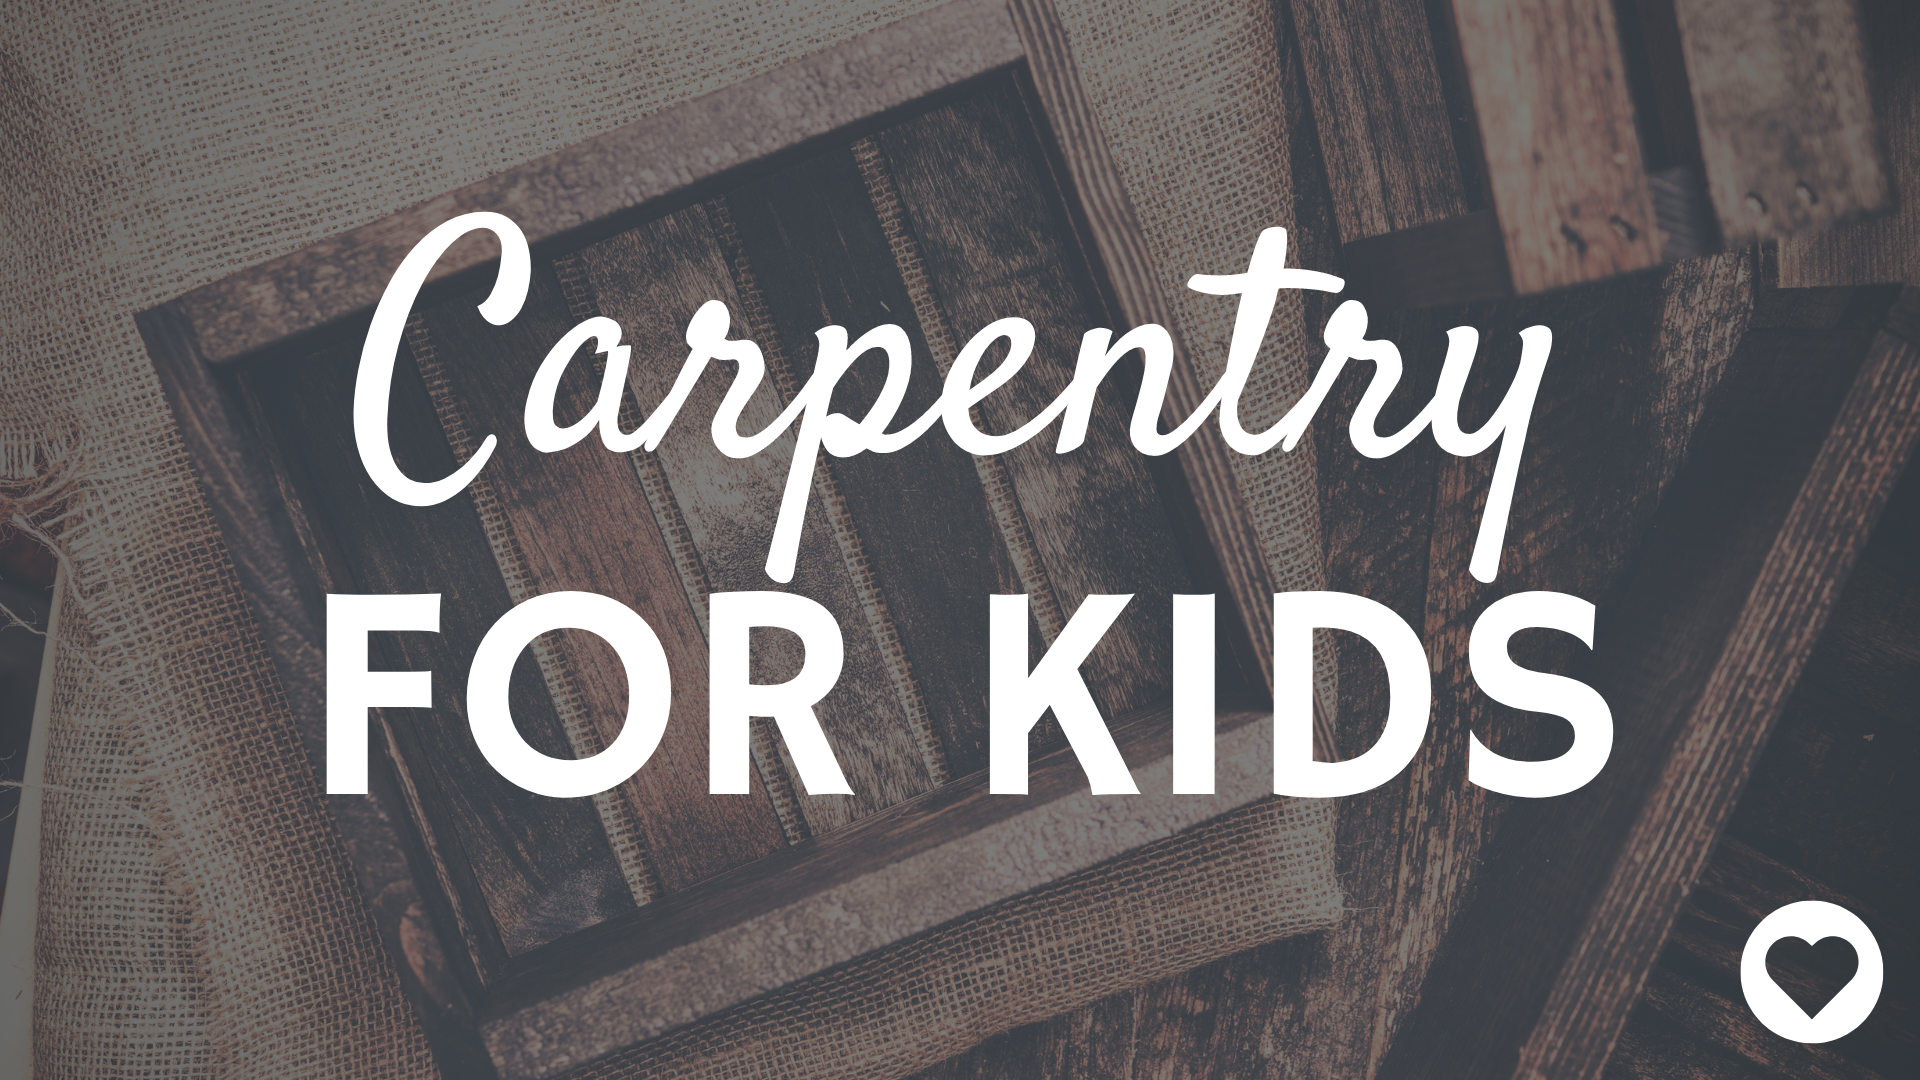 CARPENTRY FOR KIDS